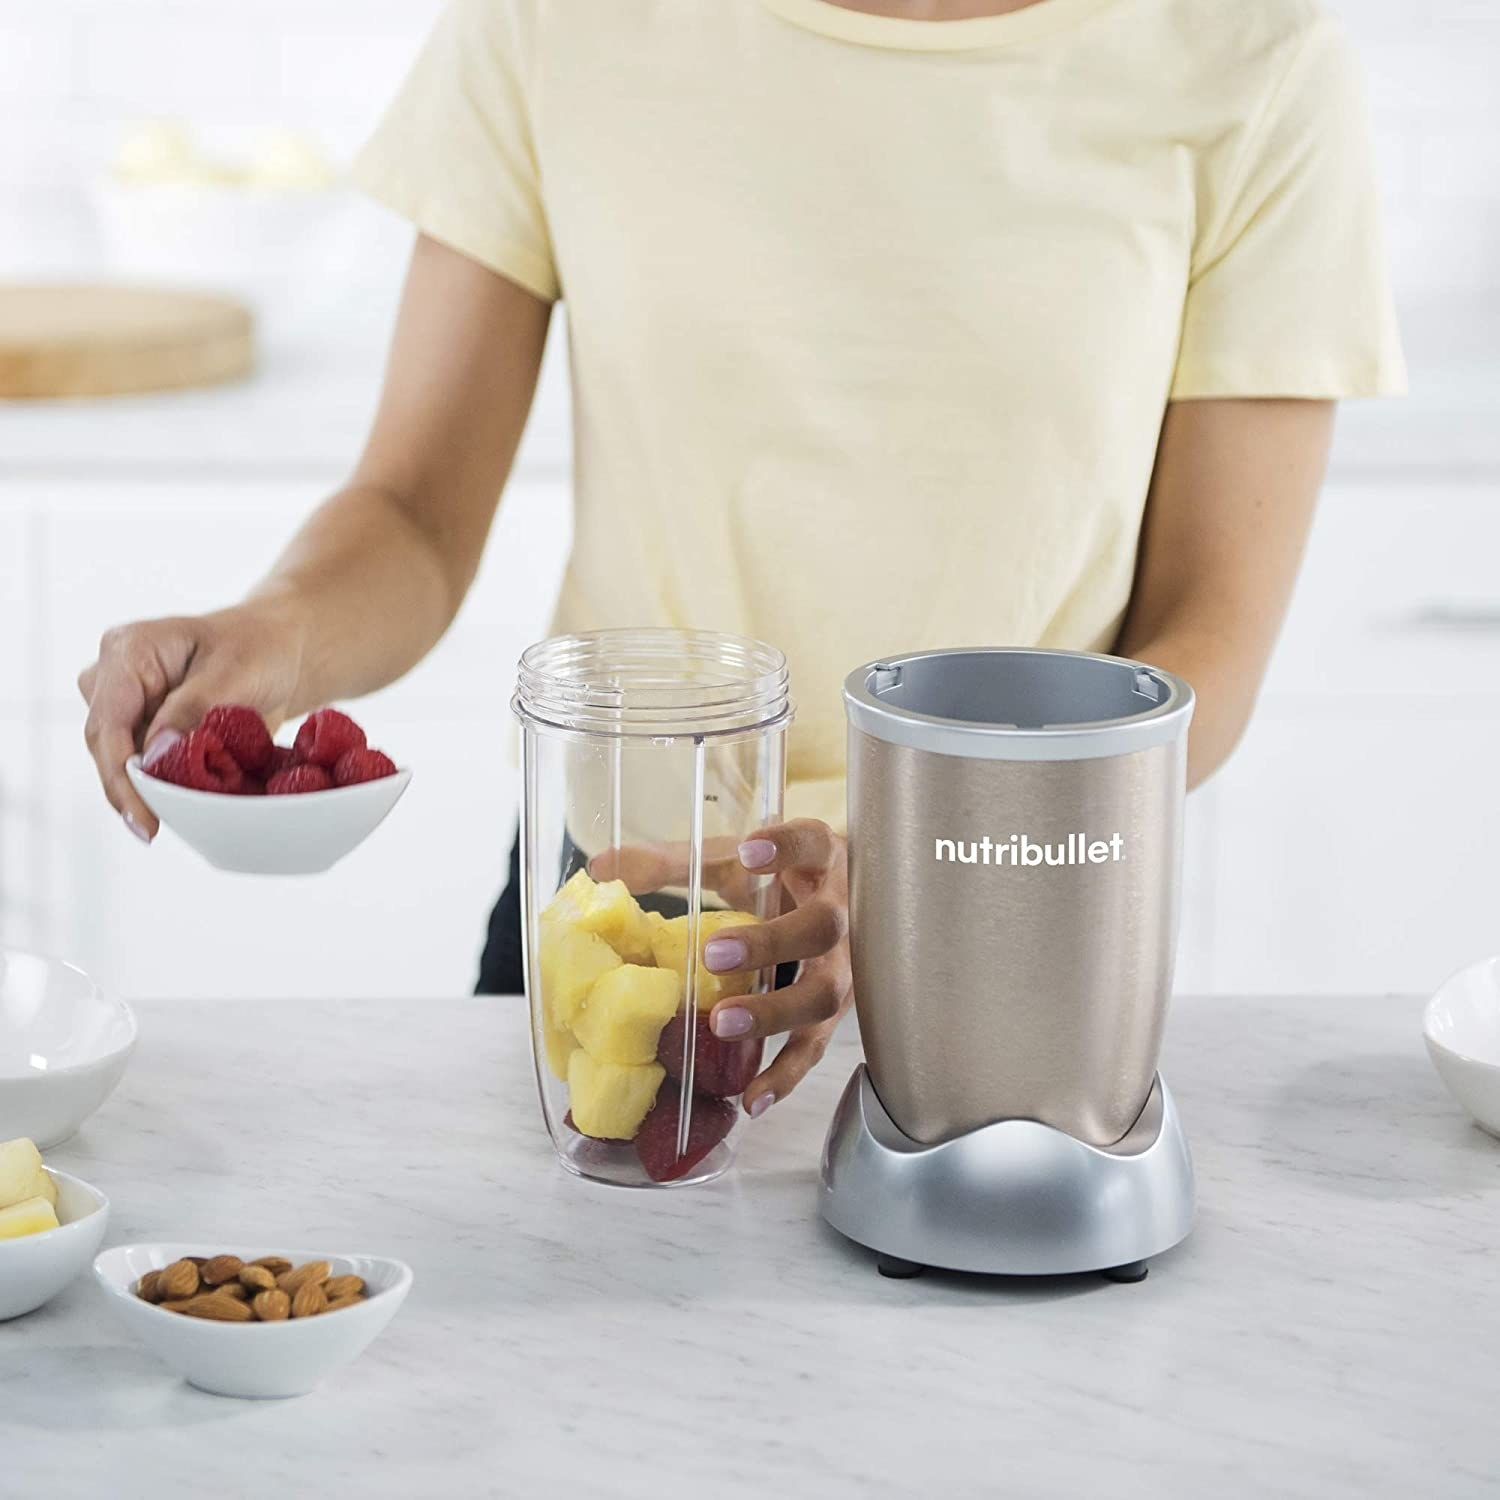 A person putting fruit into the blender cup